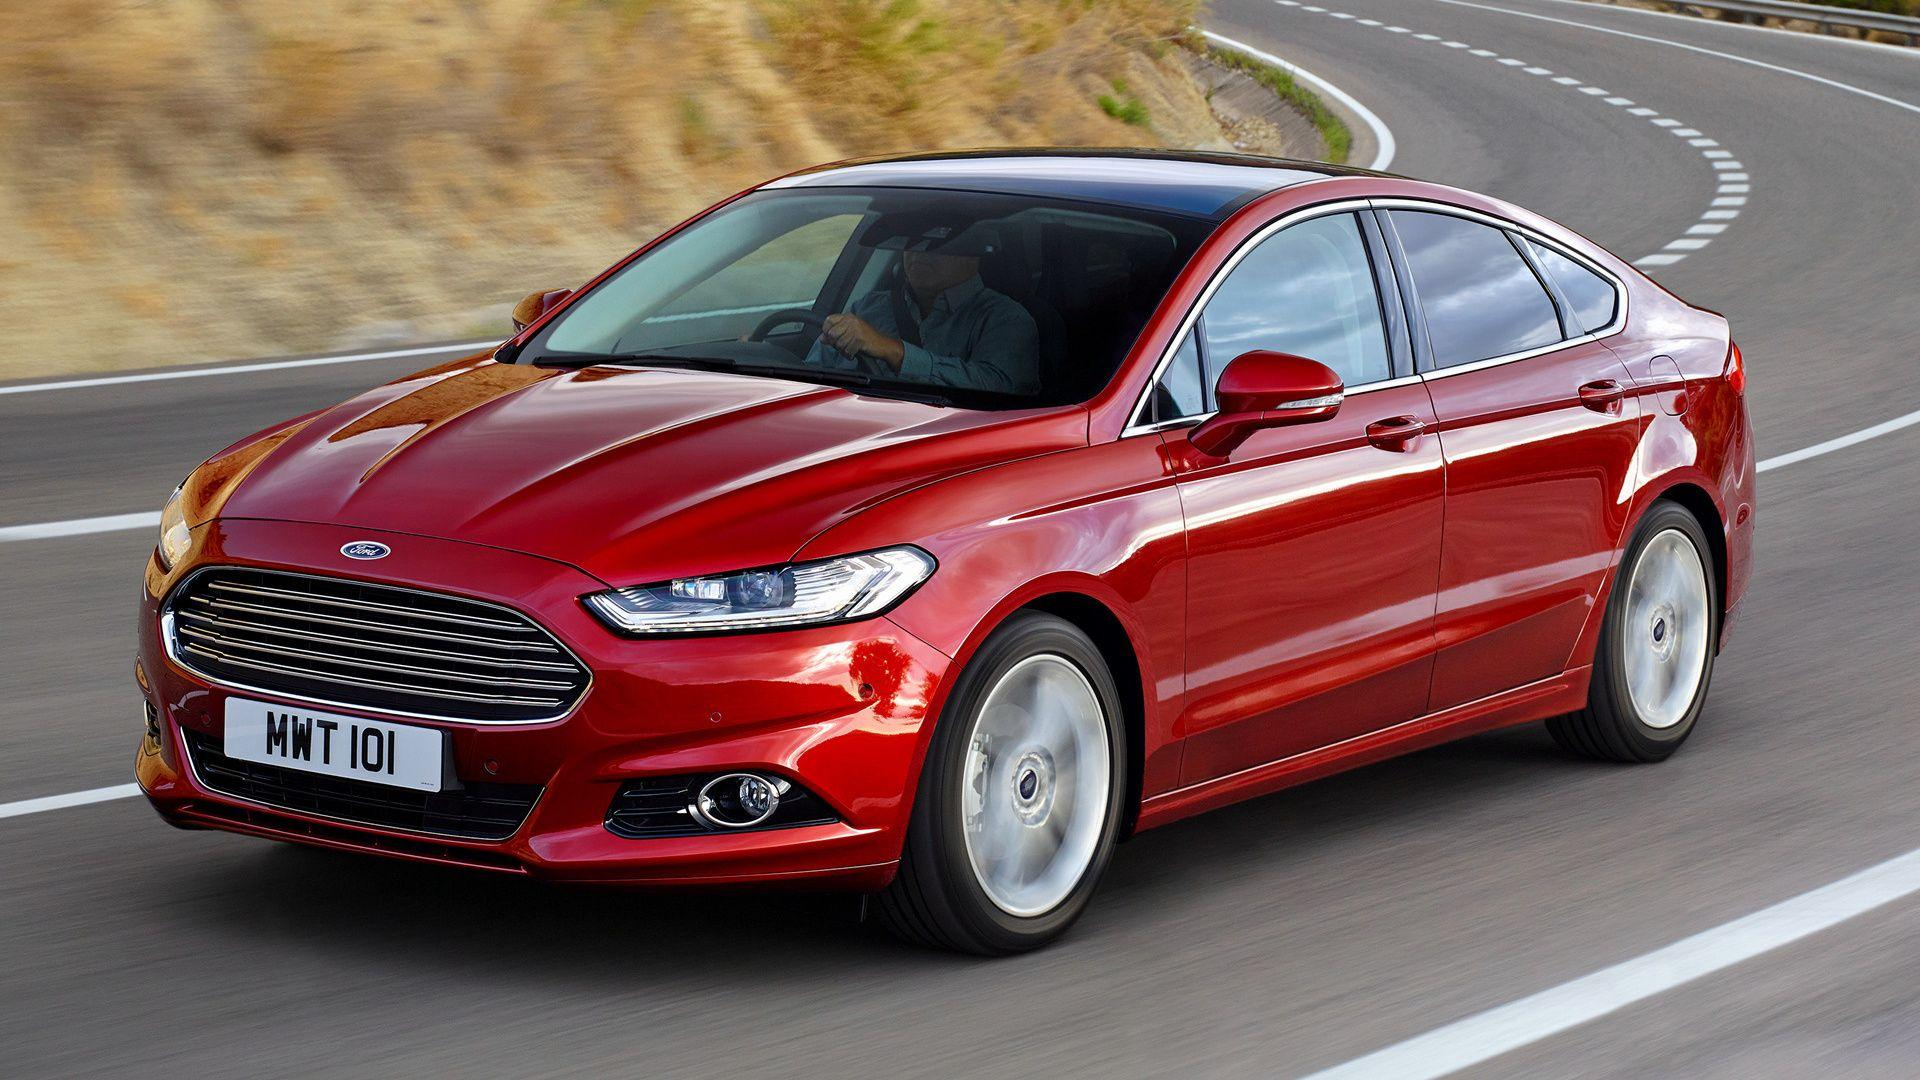 Ford Mondeo Wallpapers 5